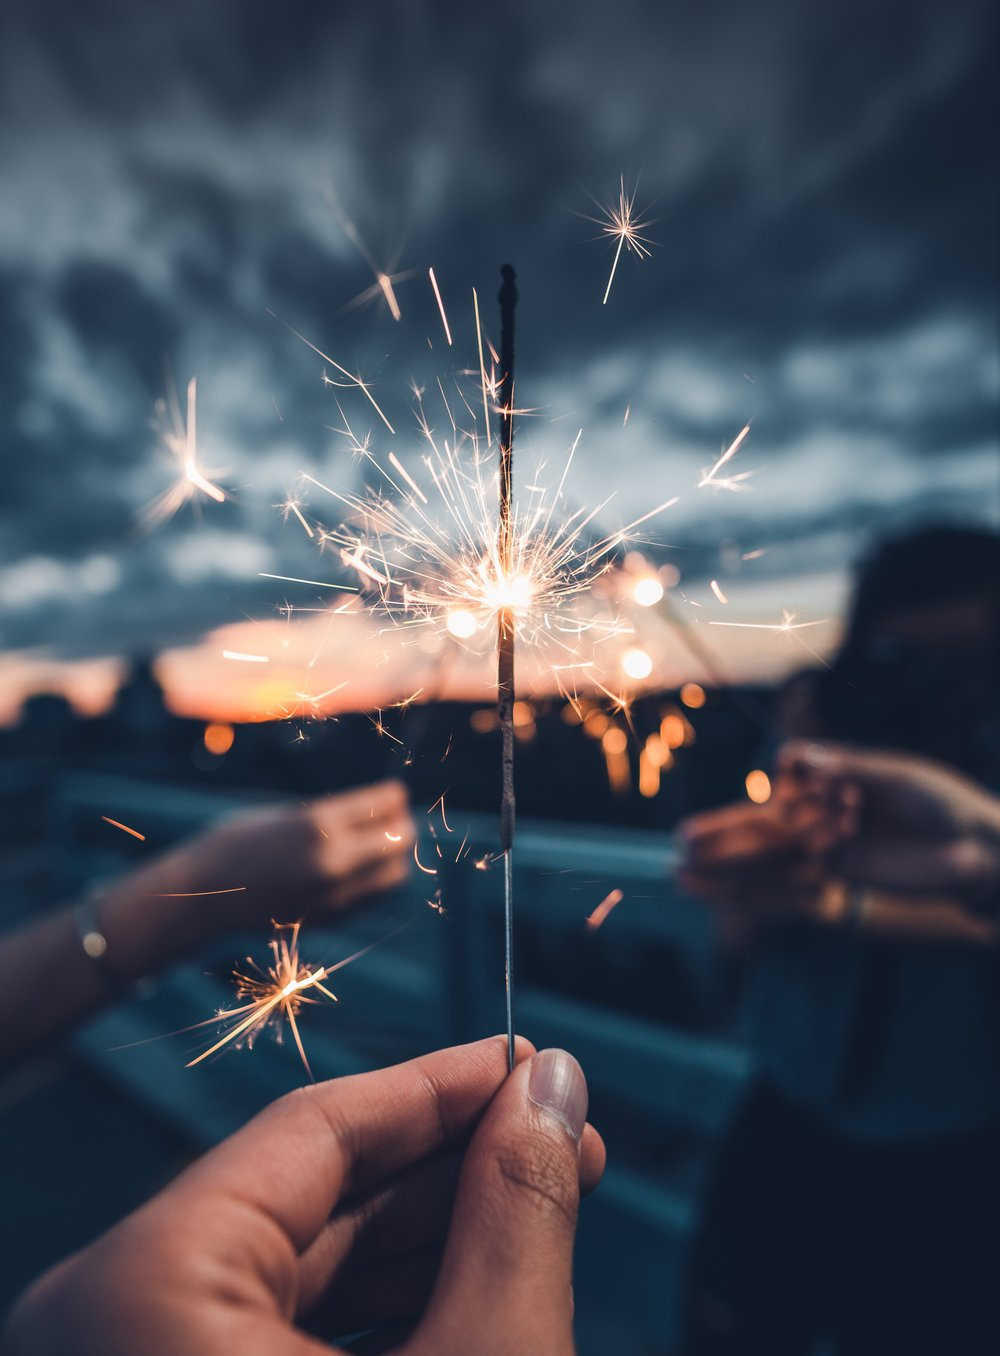 HOW TO MAKE 2018 YOUR BEST YEAR? - My Life My Choice